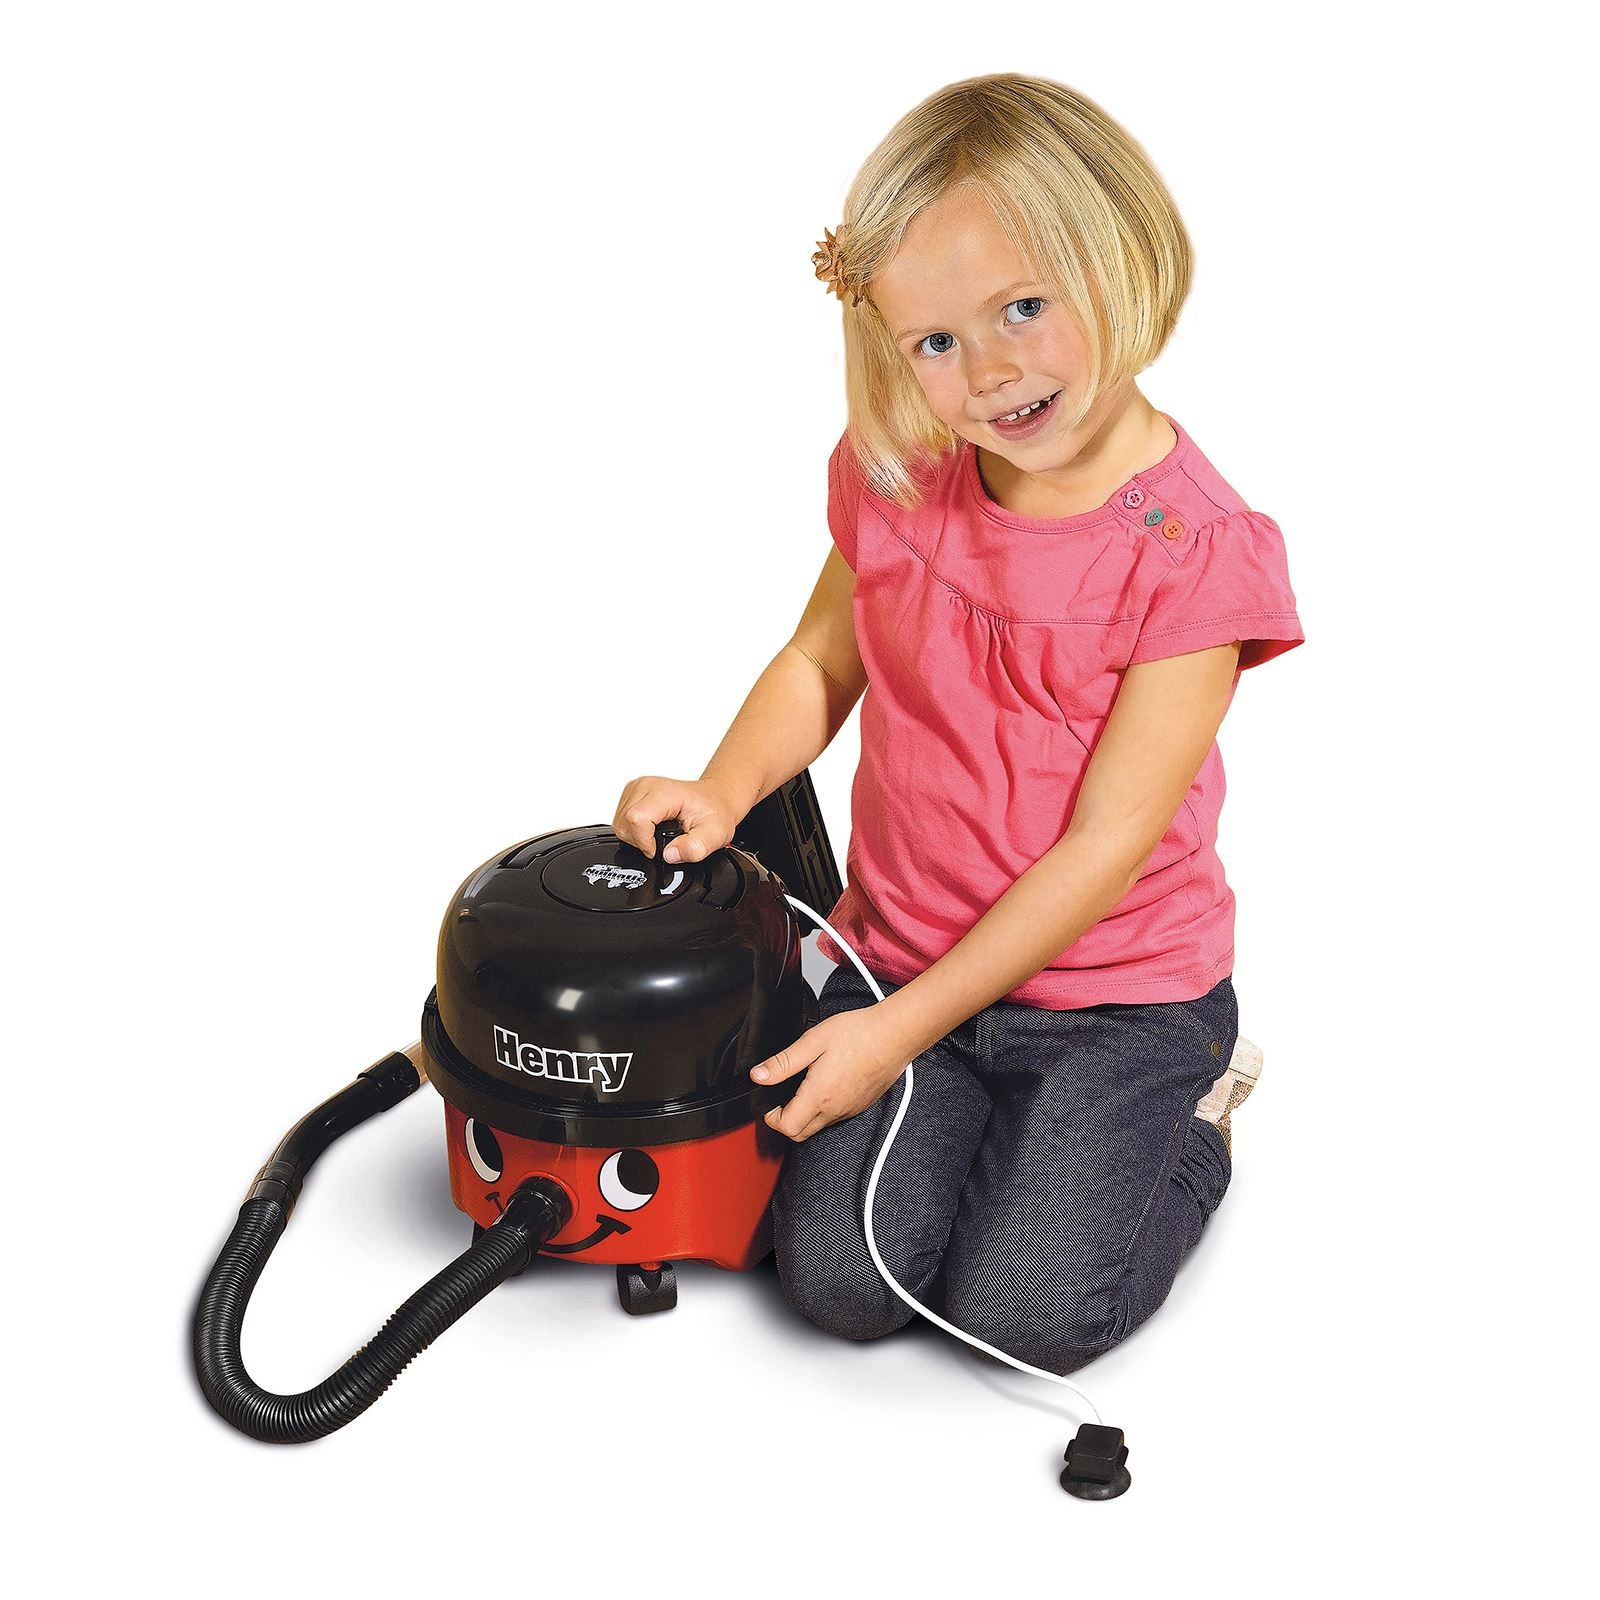 Indexbild 22 - KIDS VACUUM CLEANERS - LITTLE HENRY HETTY DYSON - KIDS CHILDRENS ROLE PLAY